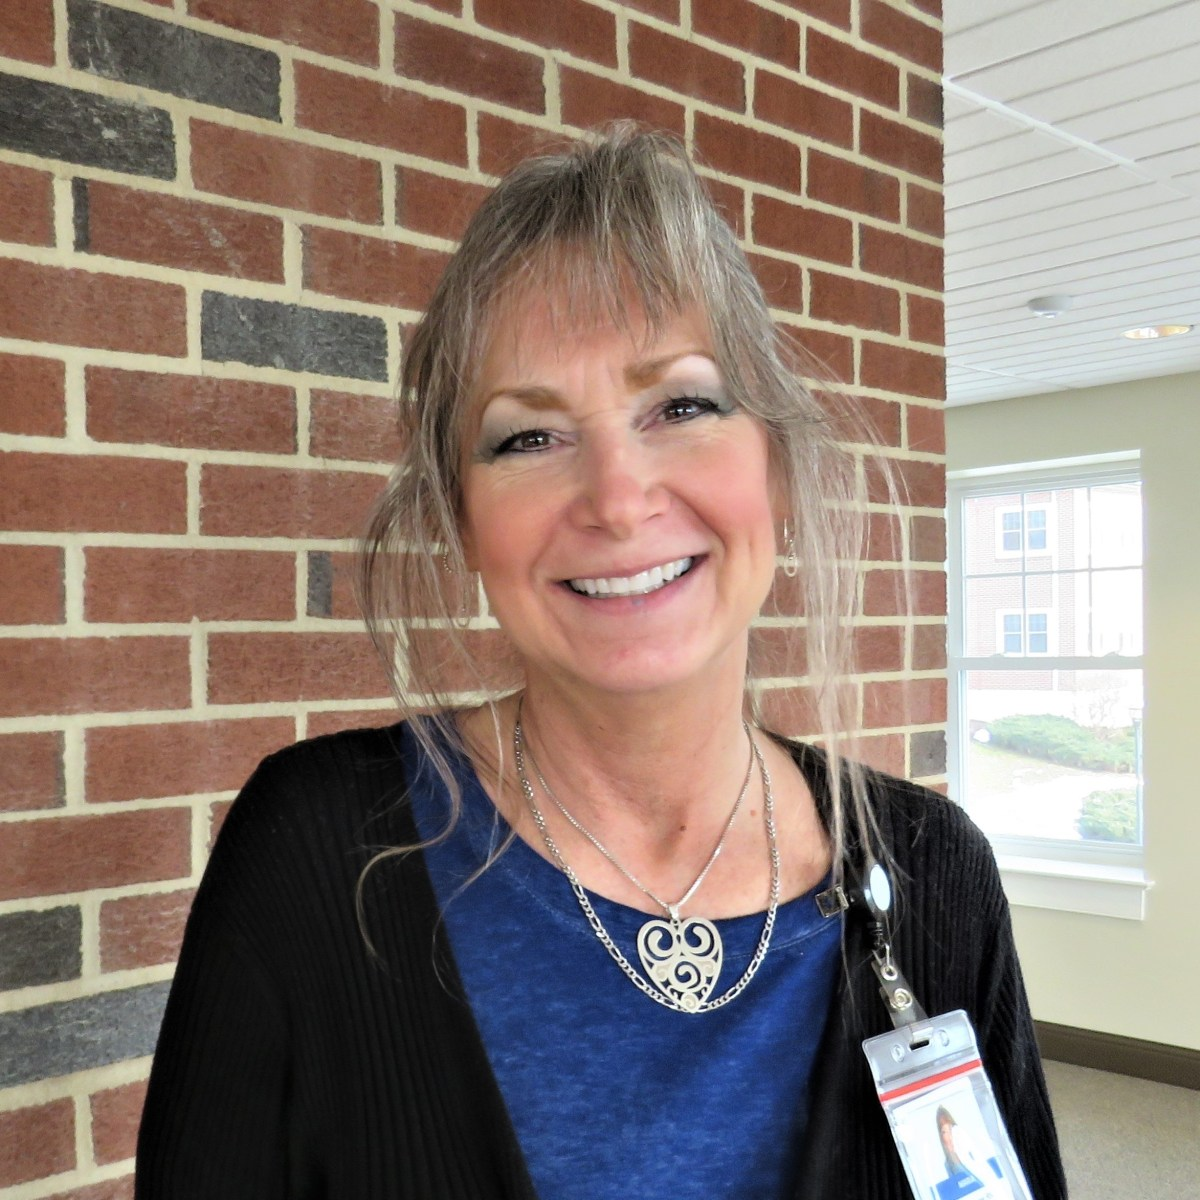 Meet the New Director of Nursing